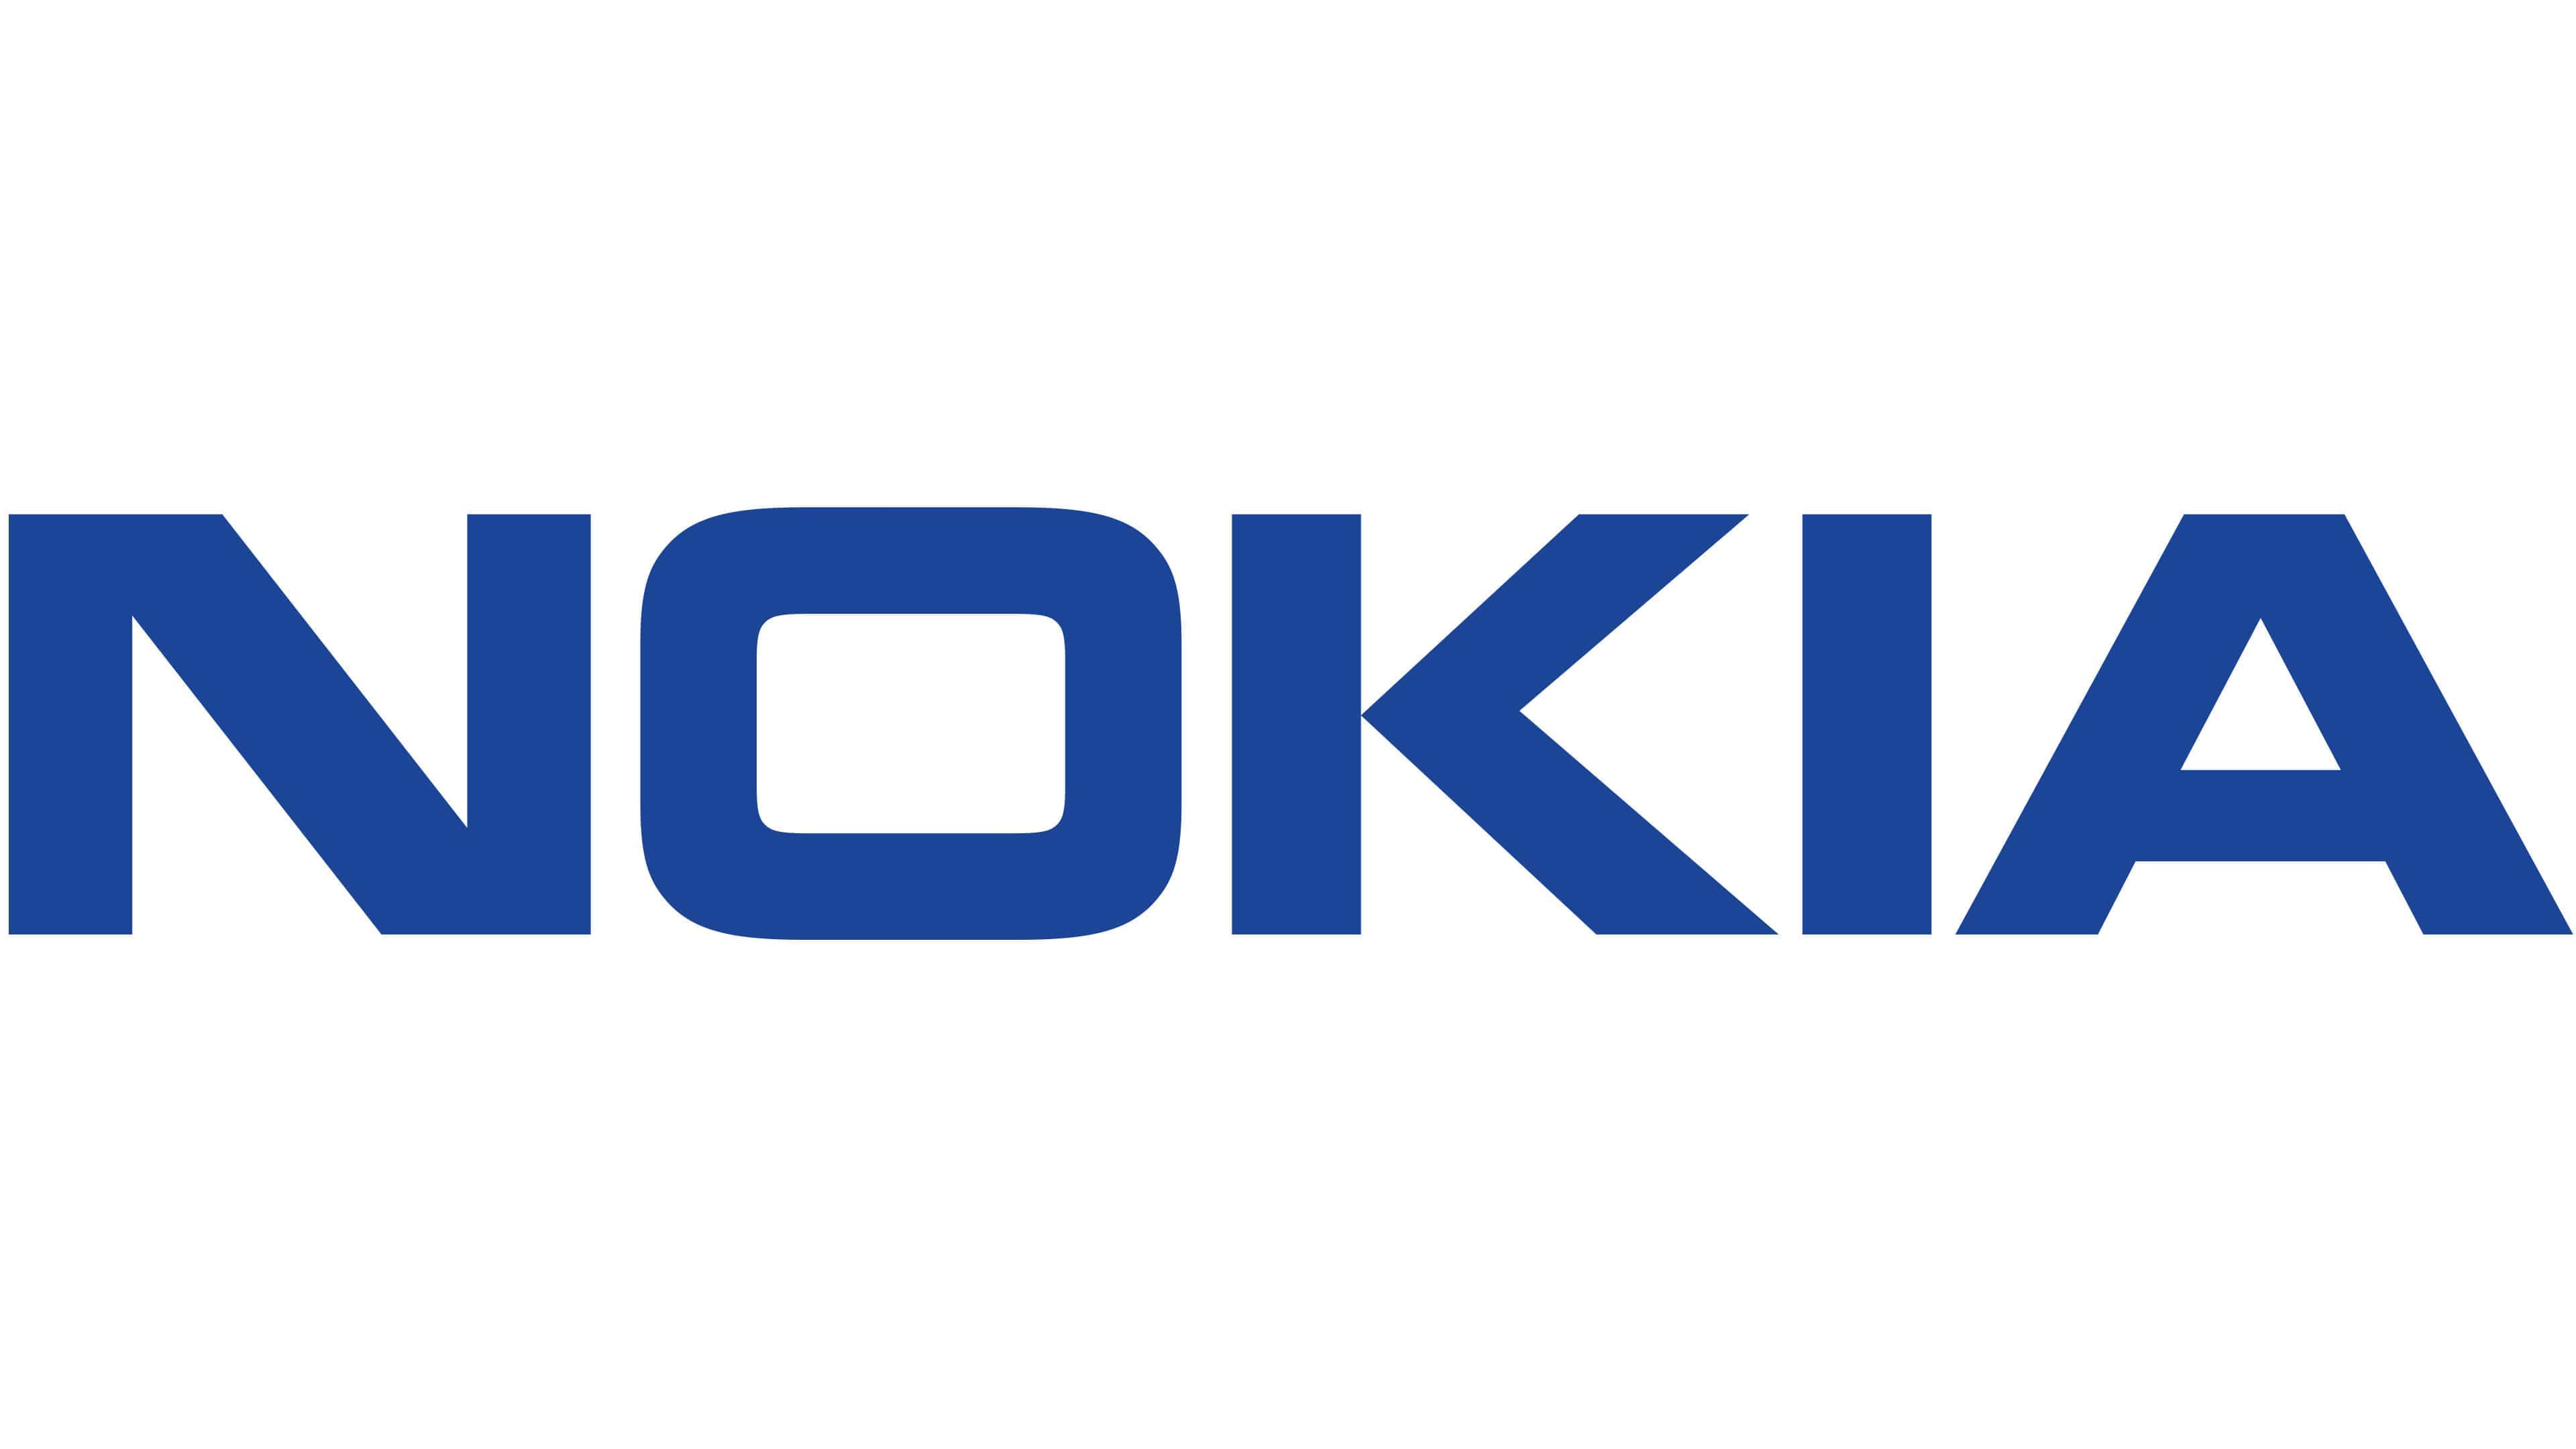 Nokia Logo History The Most Famous Brands And Company Logos In The World